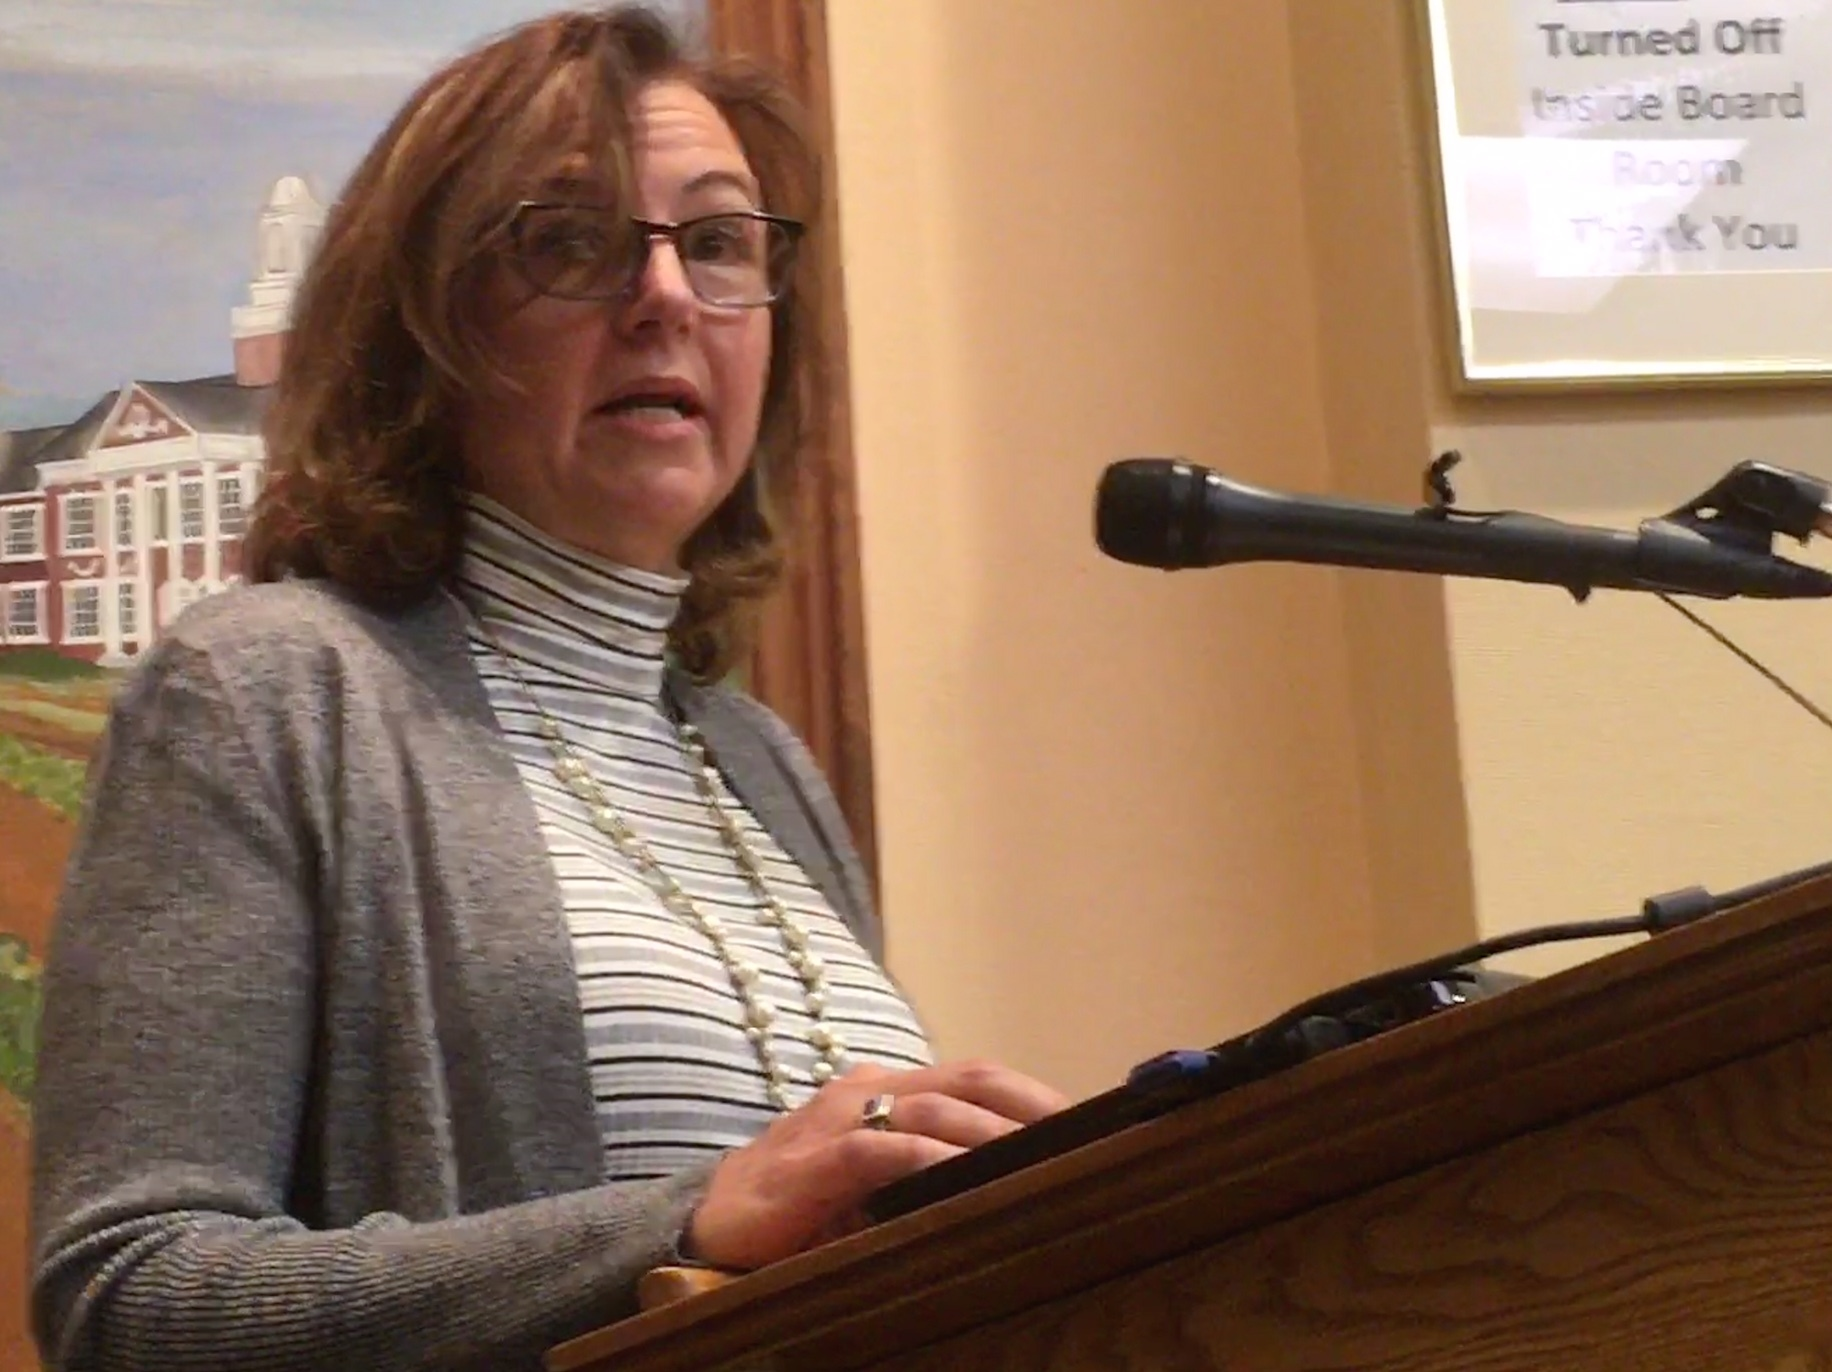 Karen Coy said said those who claim to speak for the community do not. KITTY MERRILL